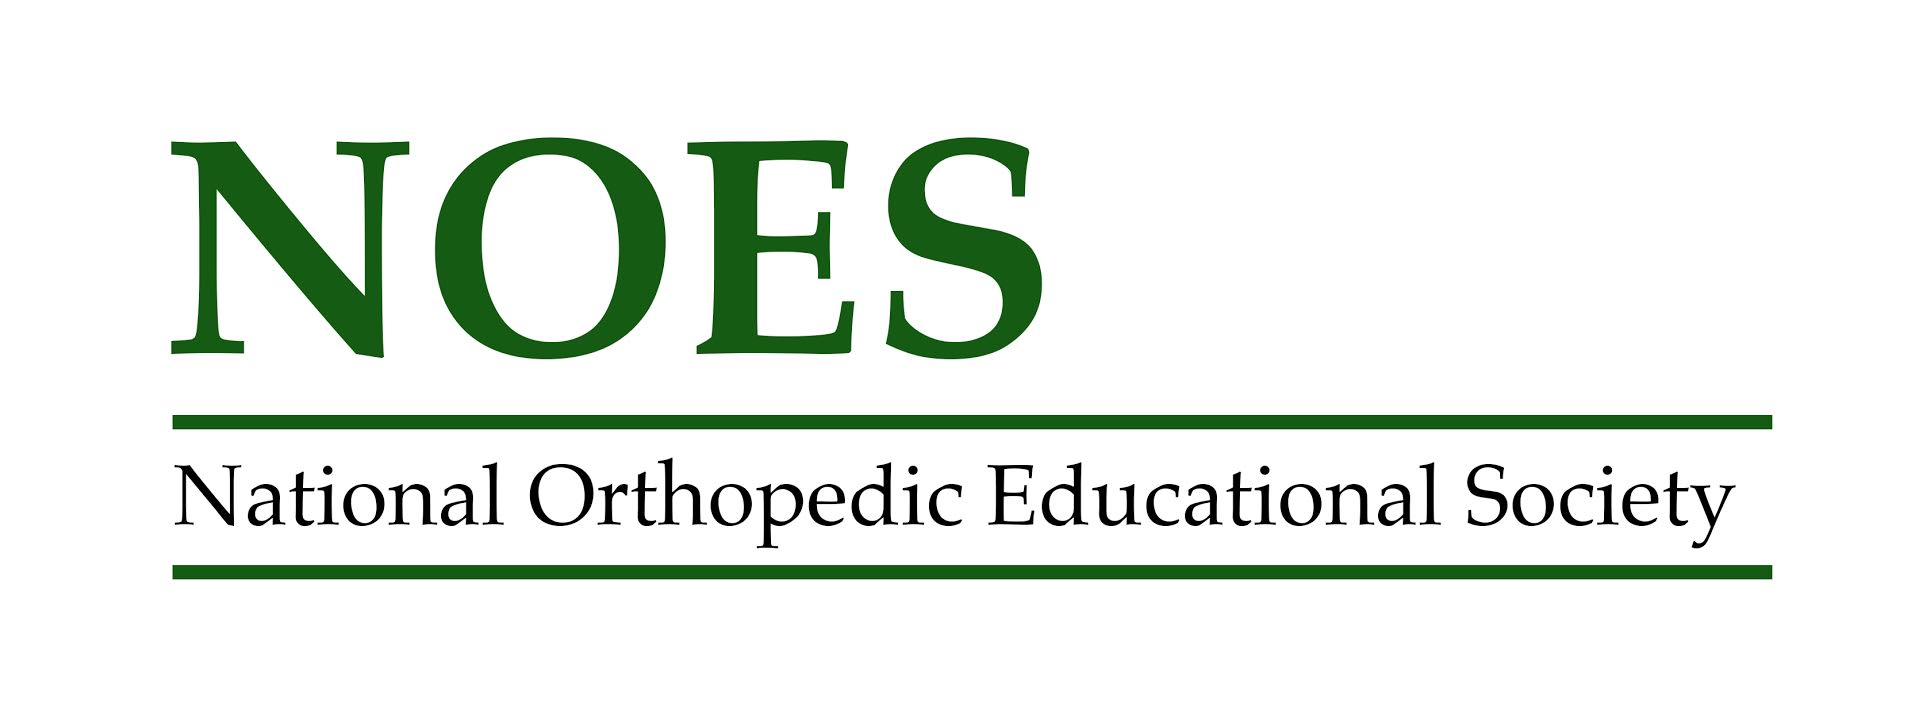 National Orthopedic Educational Society's Logo